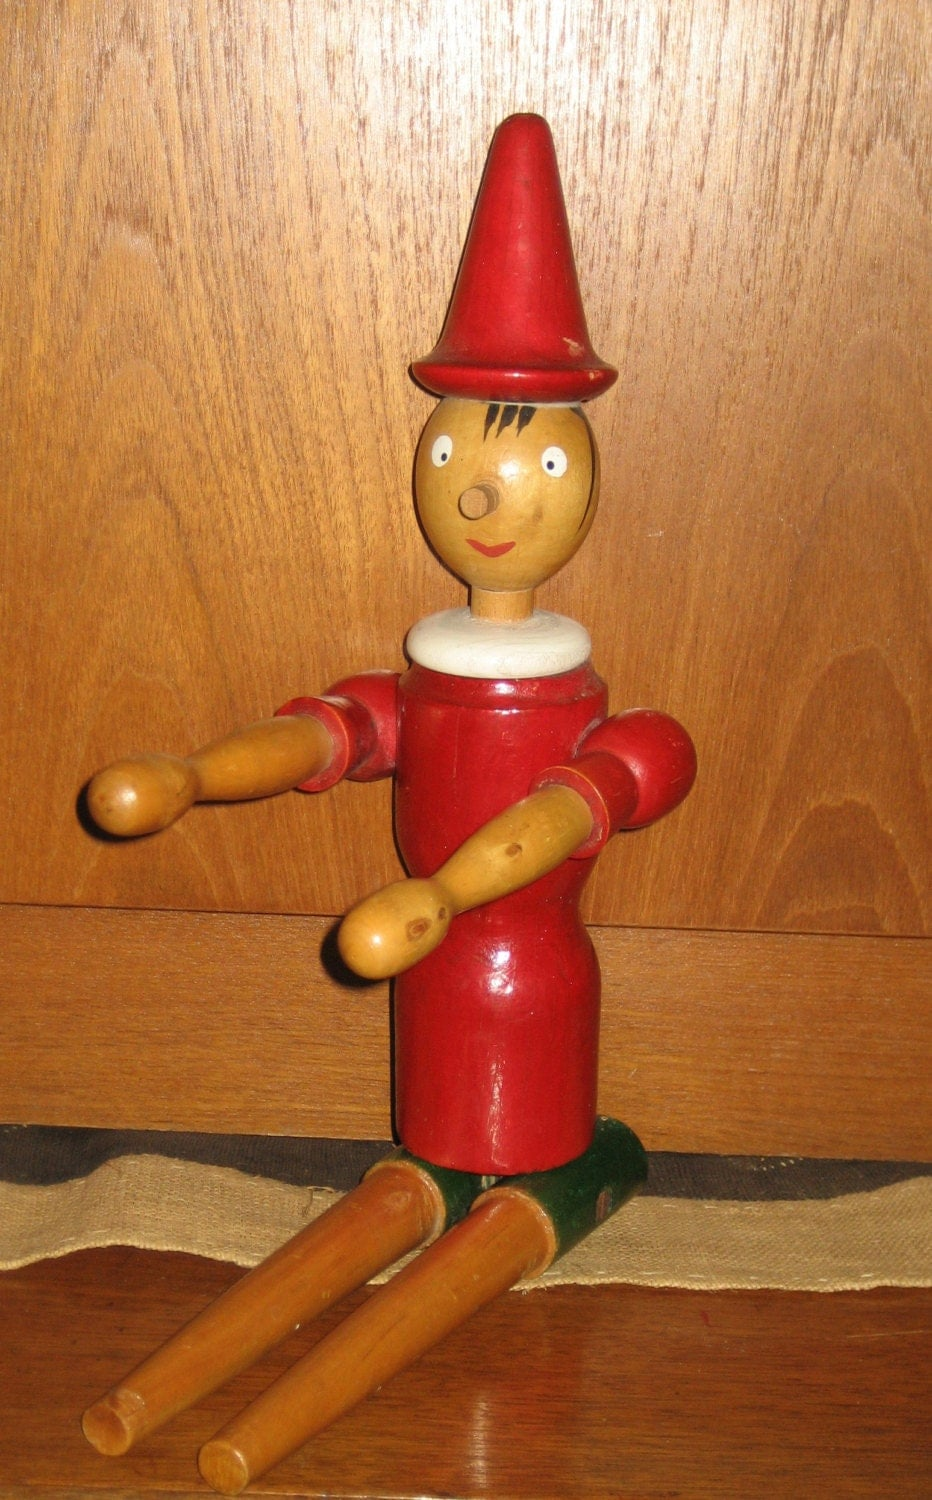 Vintage wood pinocchio doll figure moving parts 50s 60s era toy